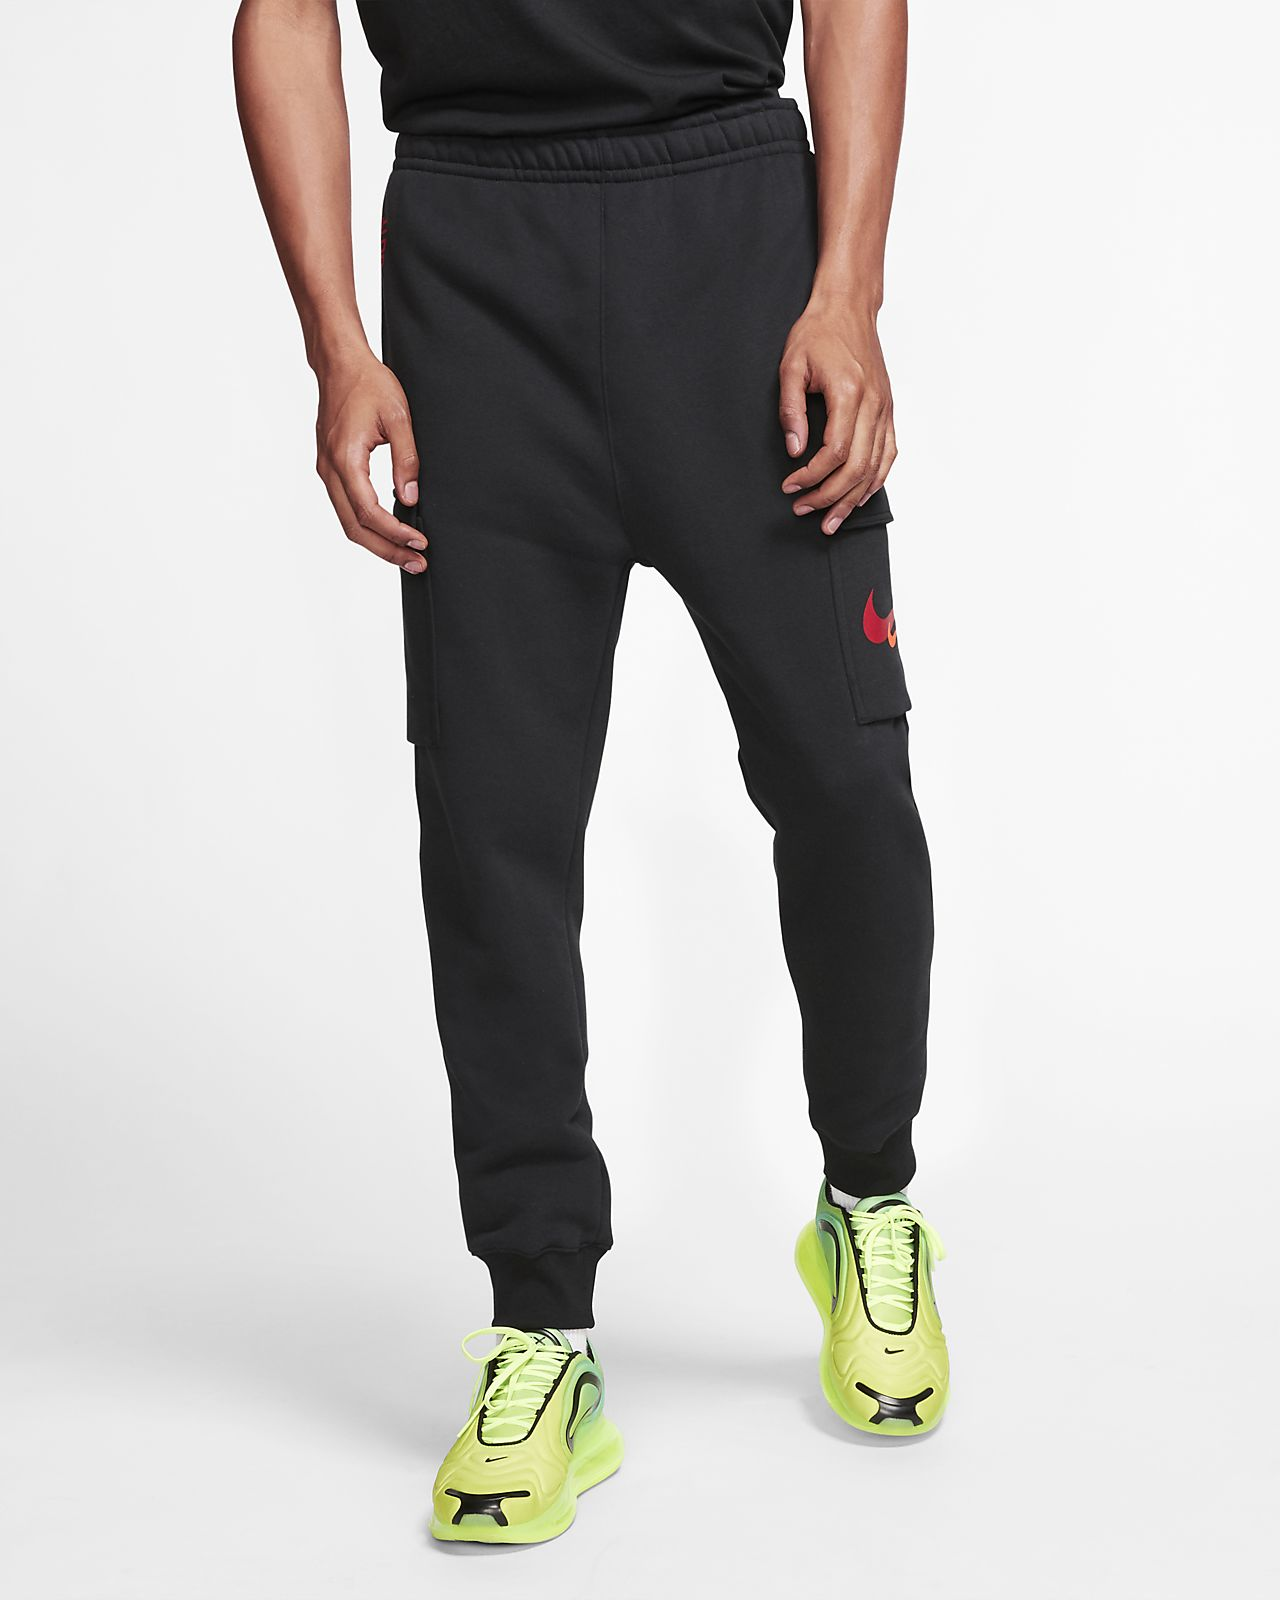 pantalon de compression nike